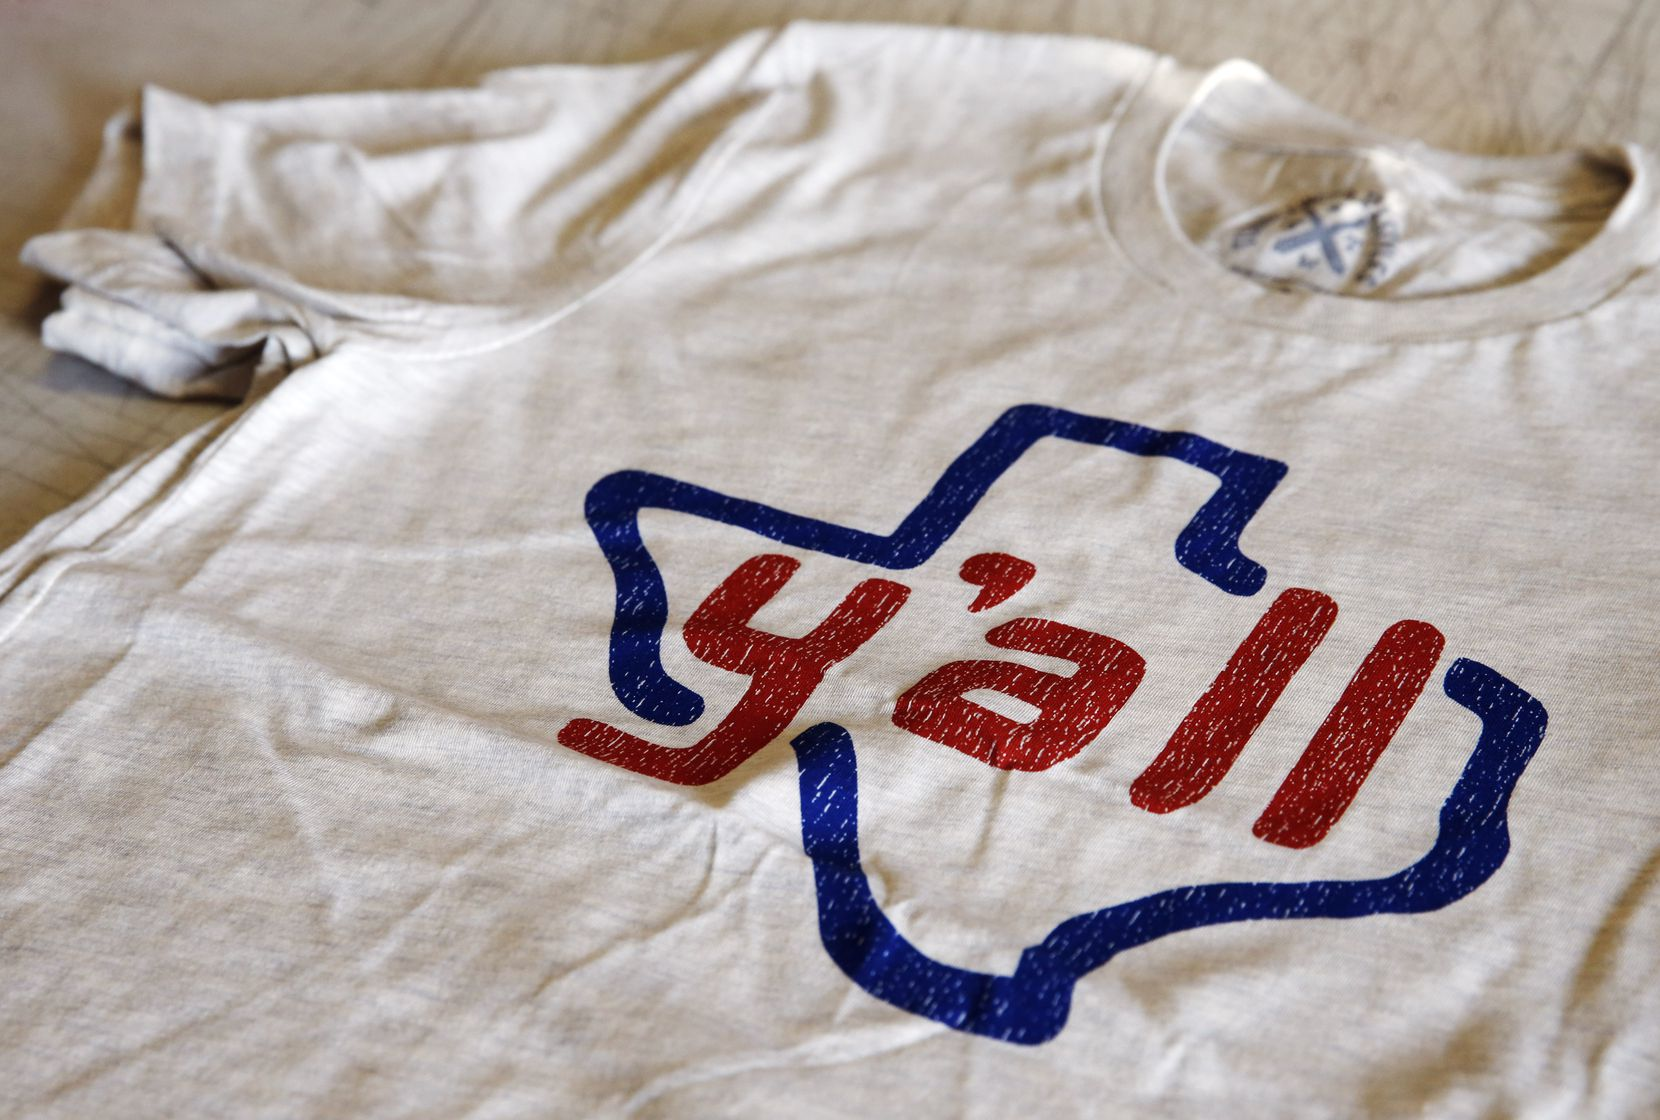 Celebrity Culture: The company's t-shirt designs capture Texans' pride in their state.